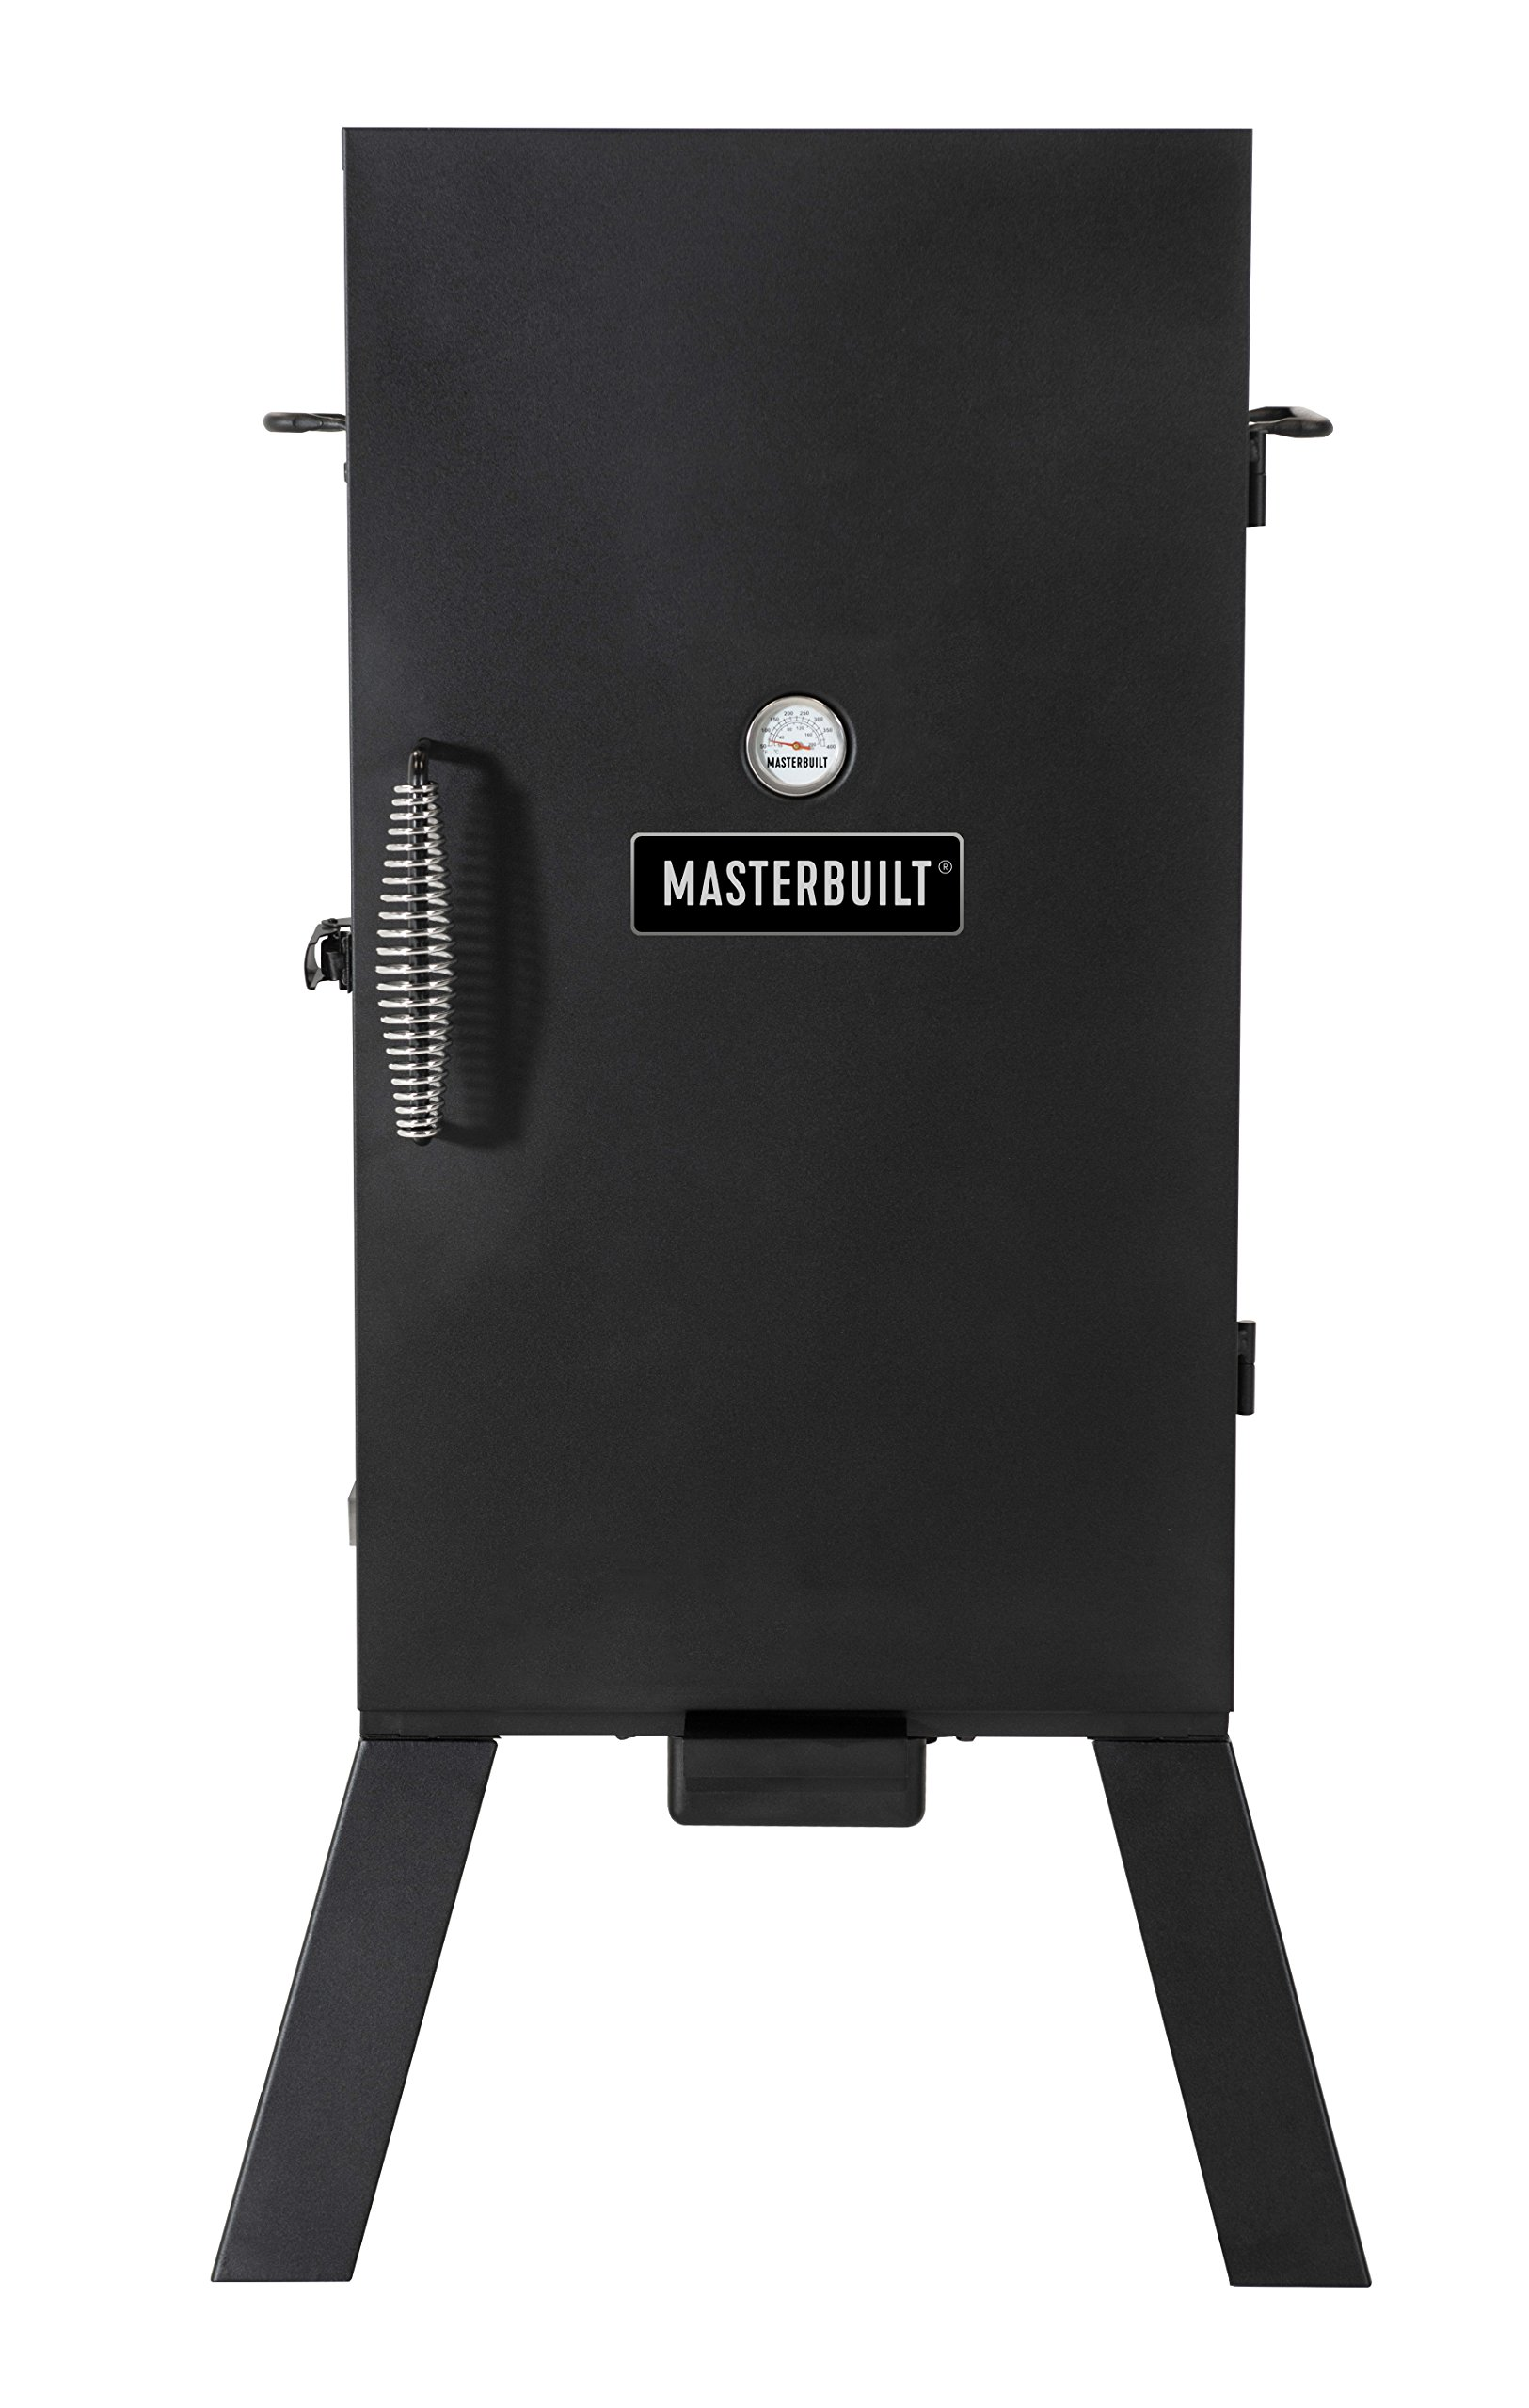 Masterbuilt MES 35B Electric Smoker by Masterbuilt